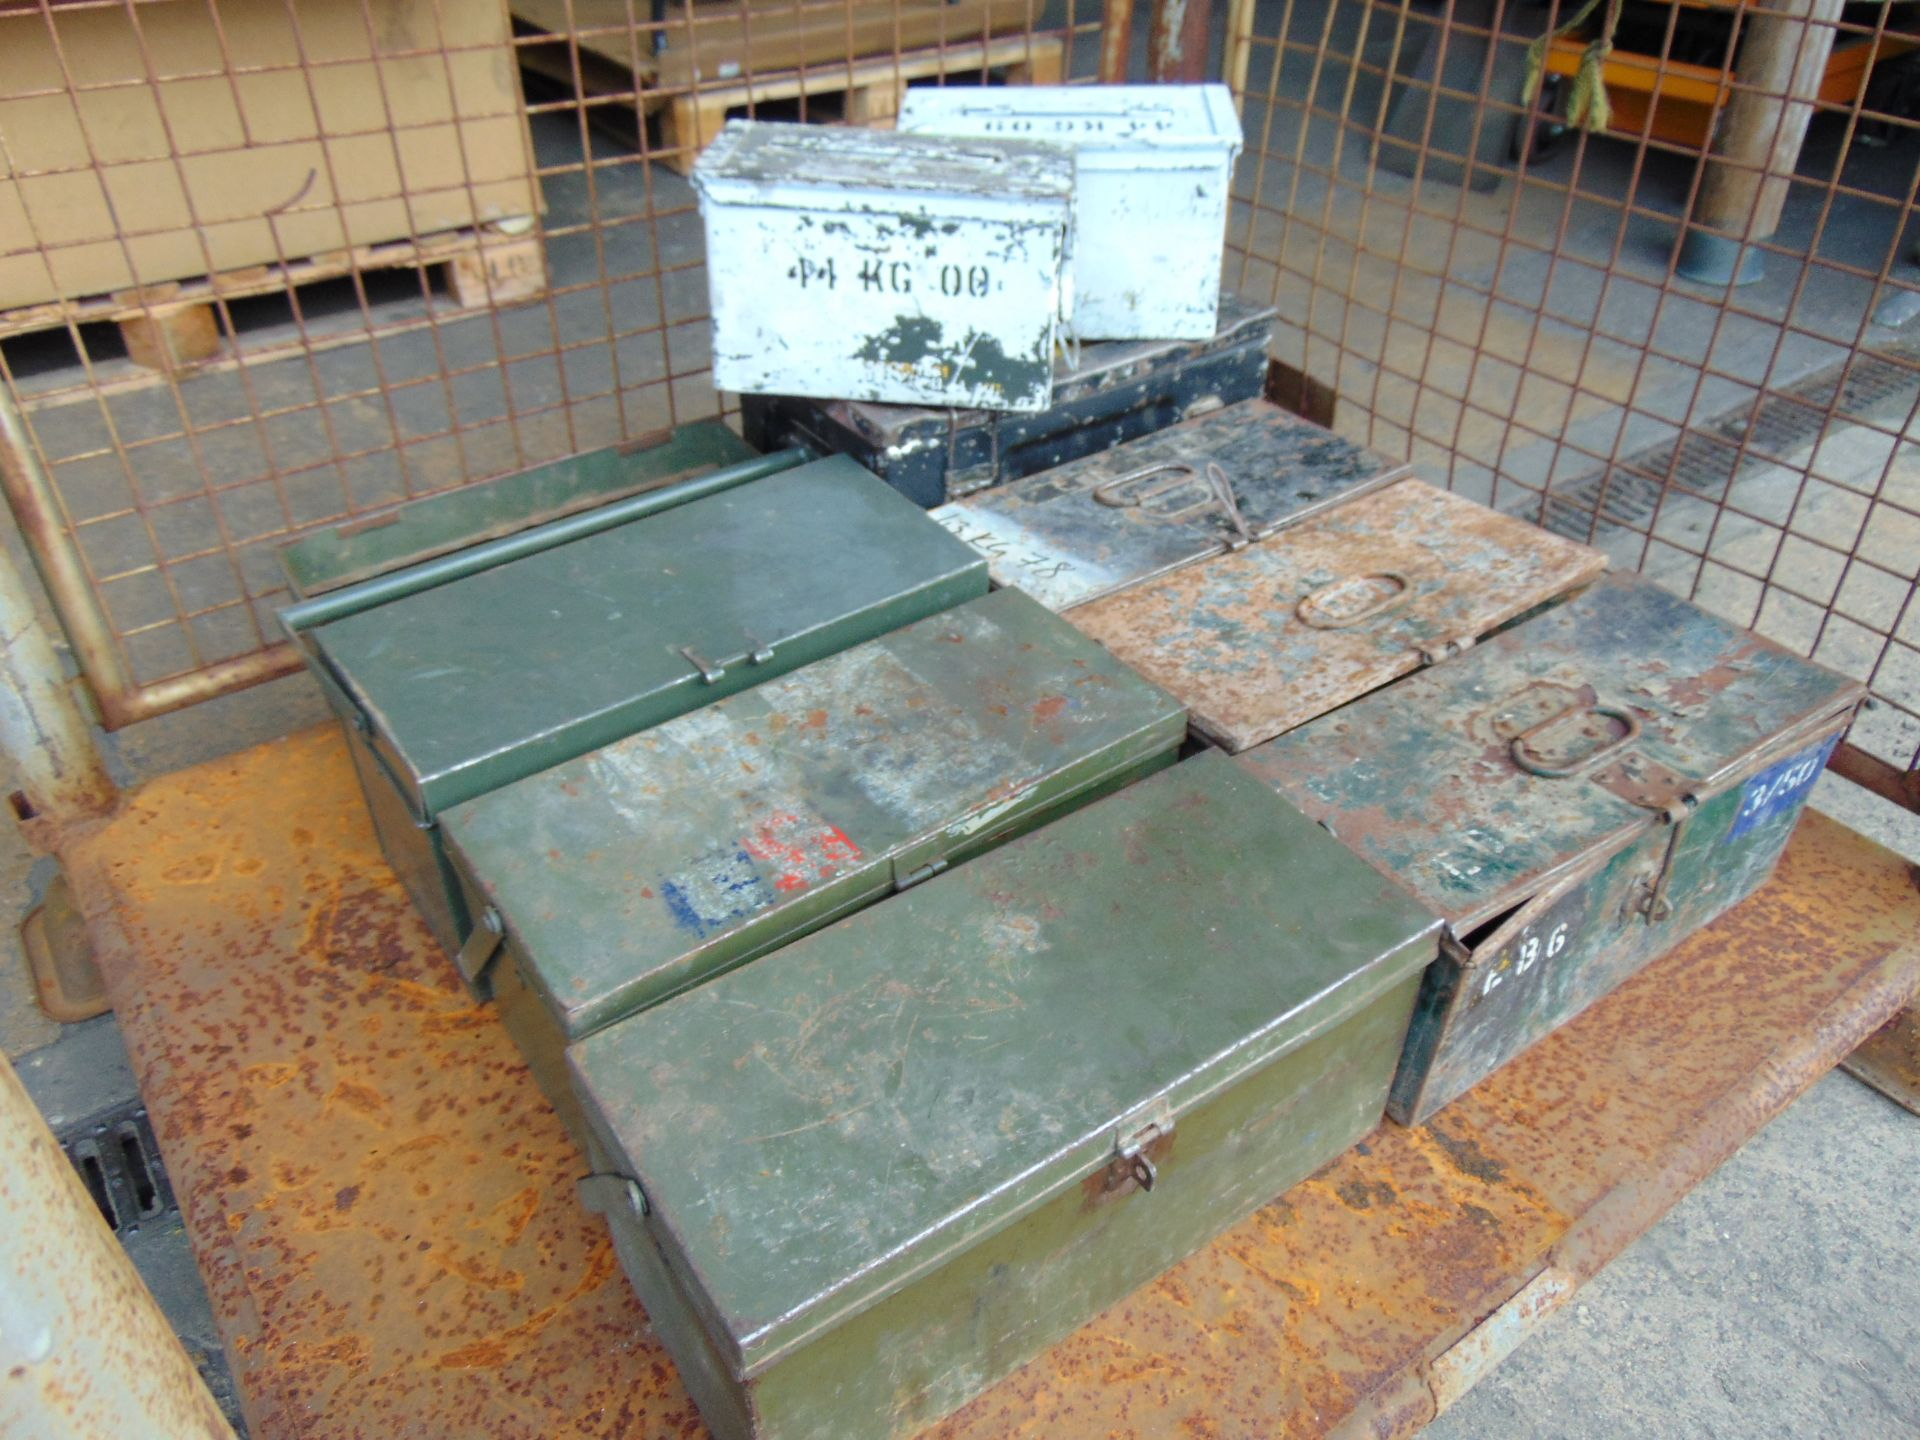 Lot 340 - Stillage Of Mixed Tool Boxes And Ammo Tins.